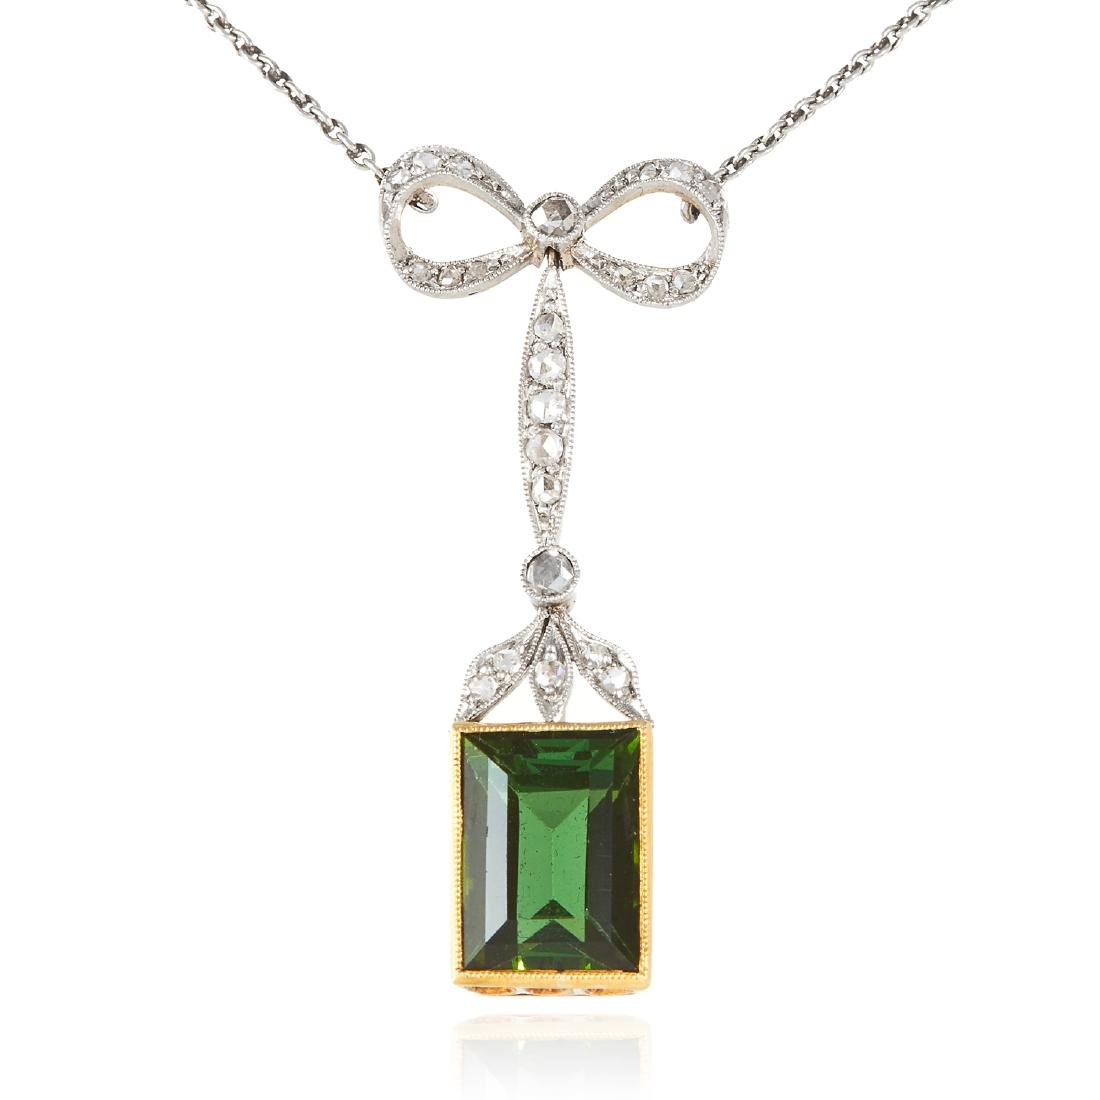 AN ANTIQUE TOURMALINE AND DIAMOND PENDANT in gold or